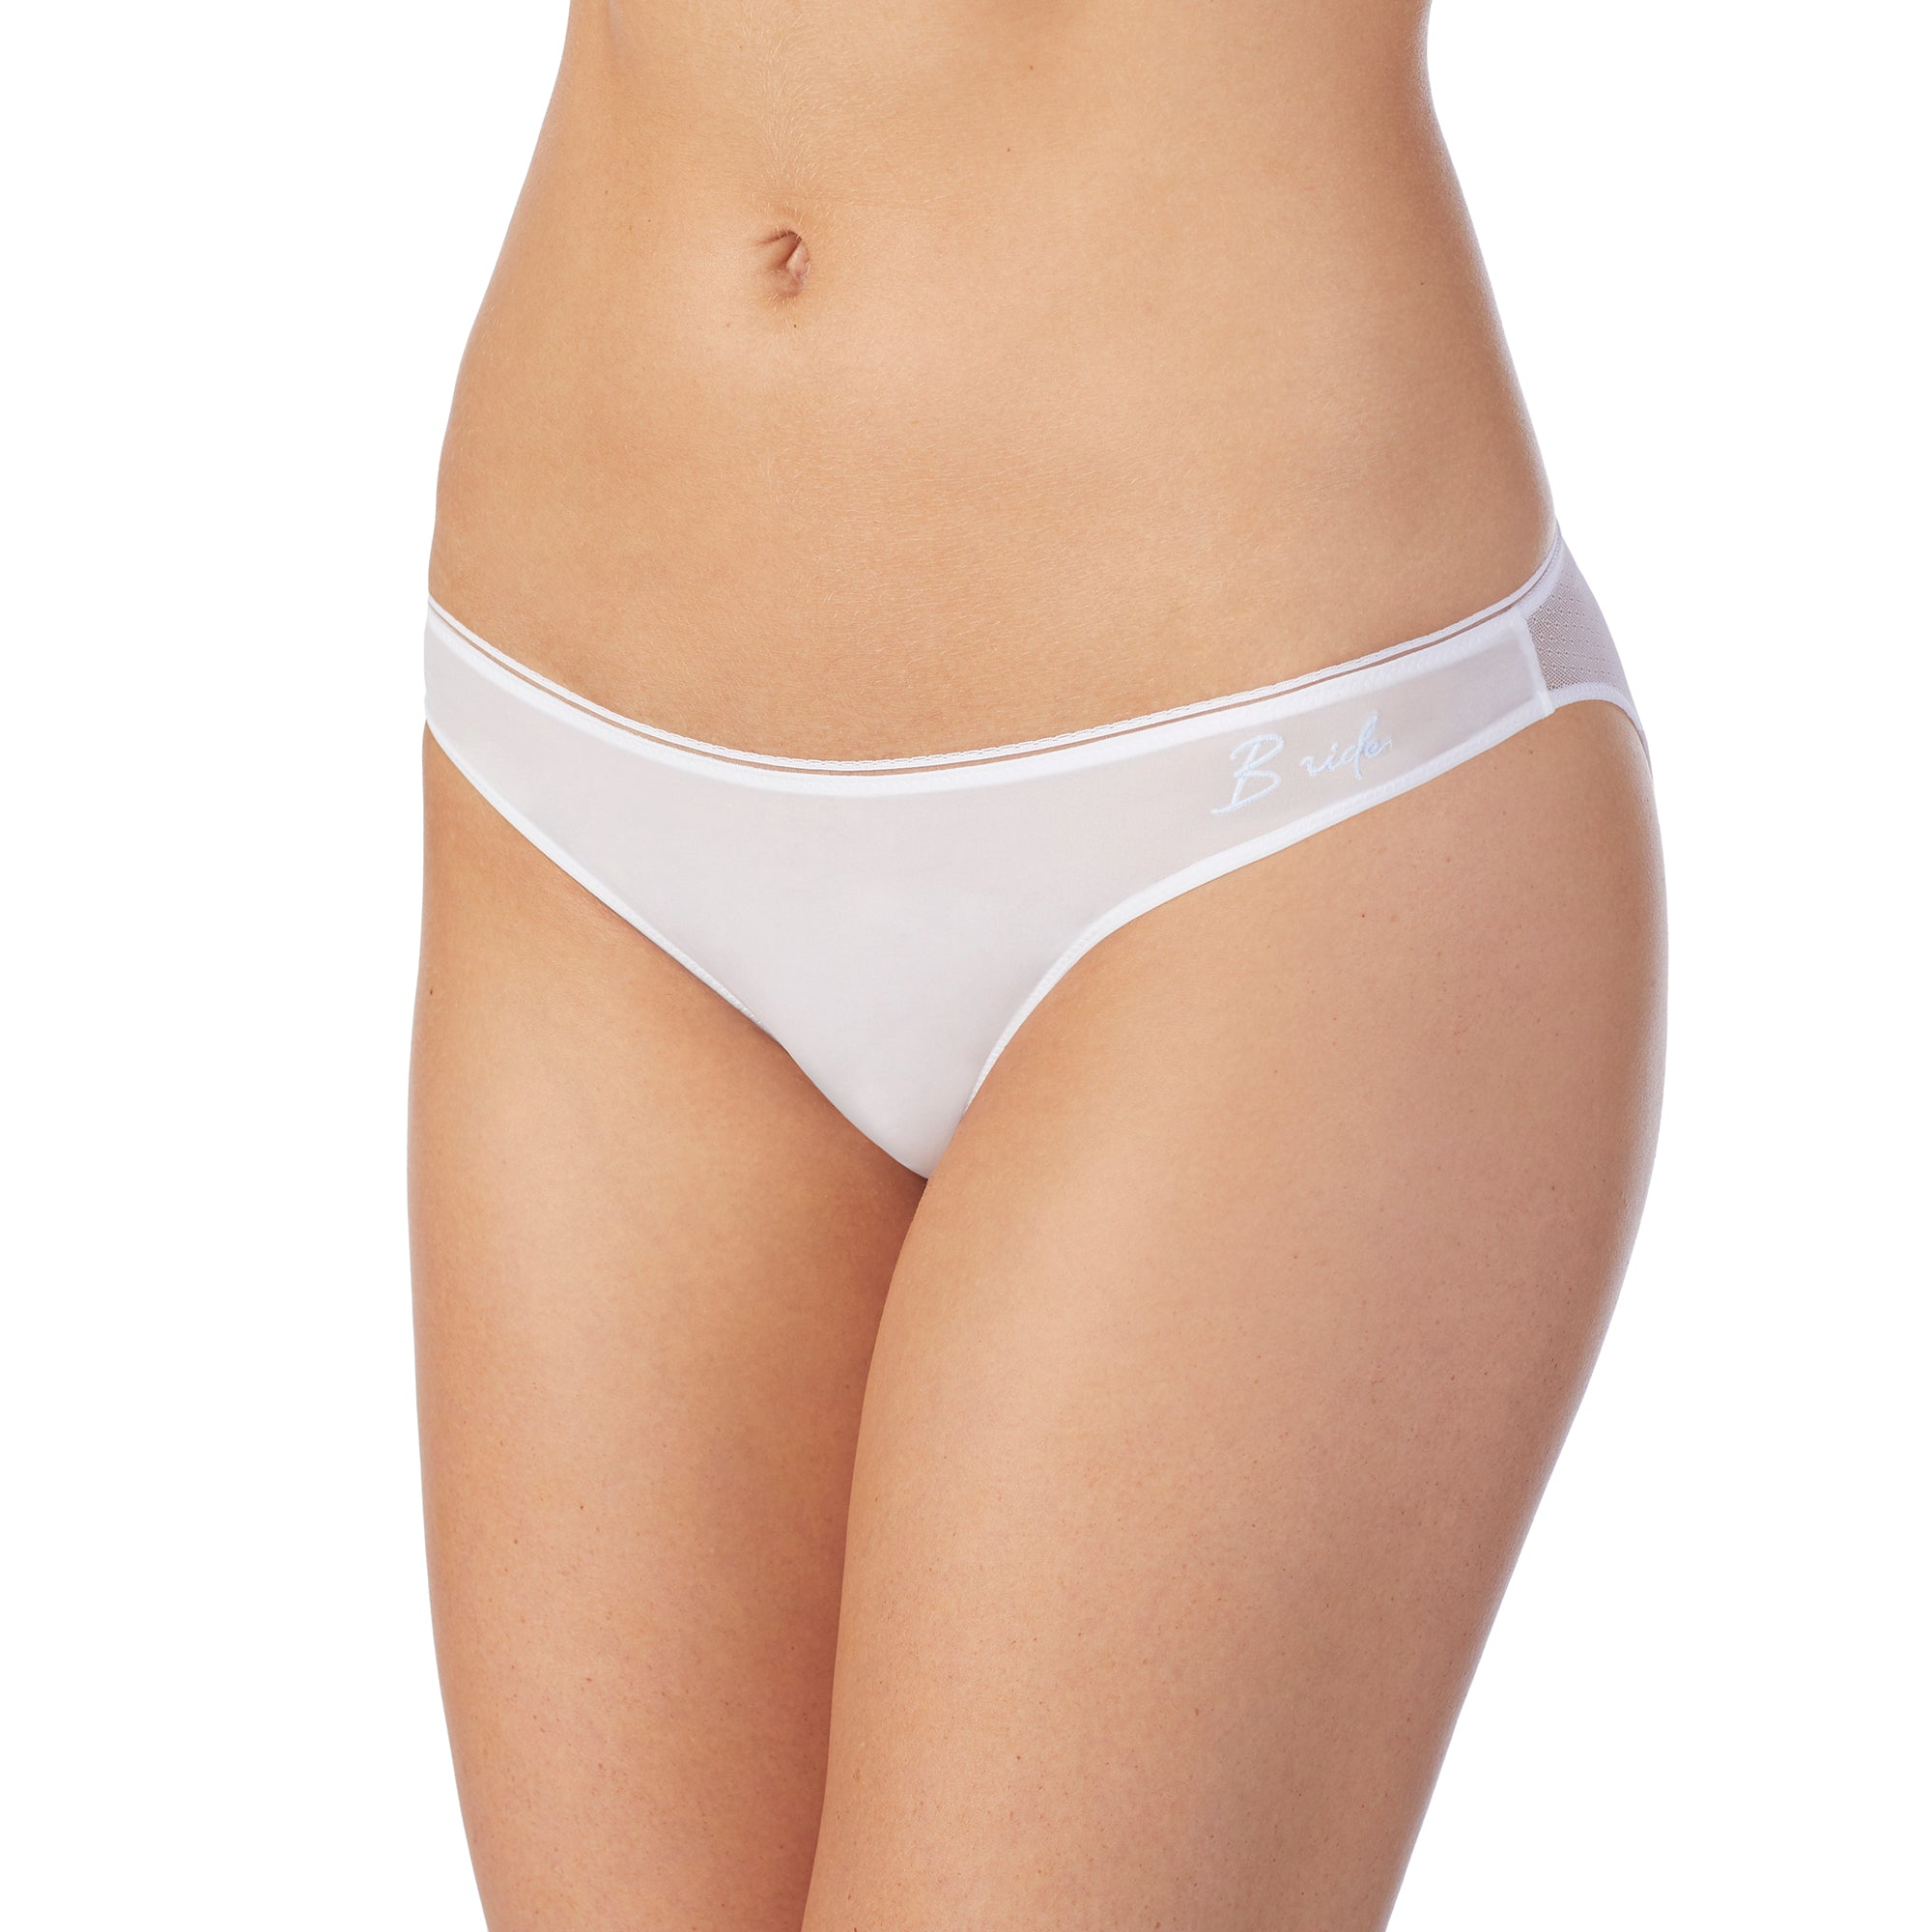 Sleek & Sheer Bridal Bikini - White